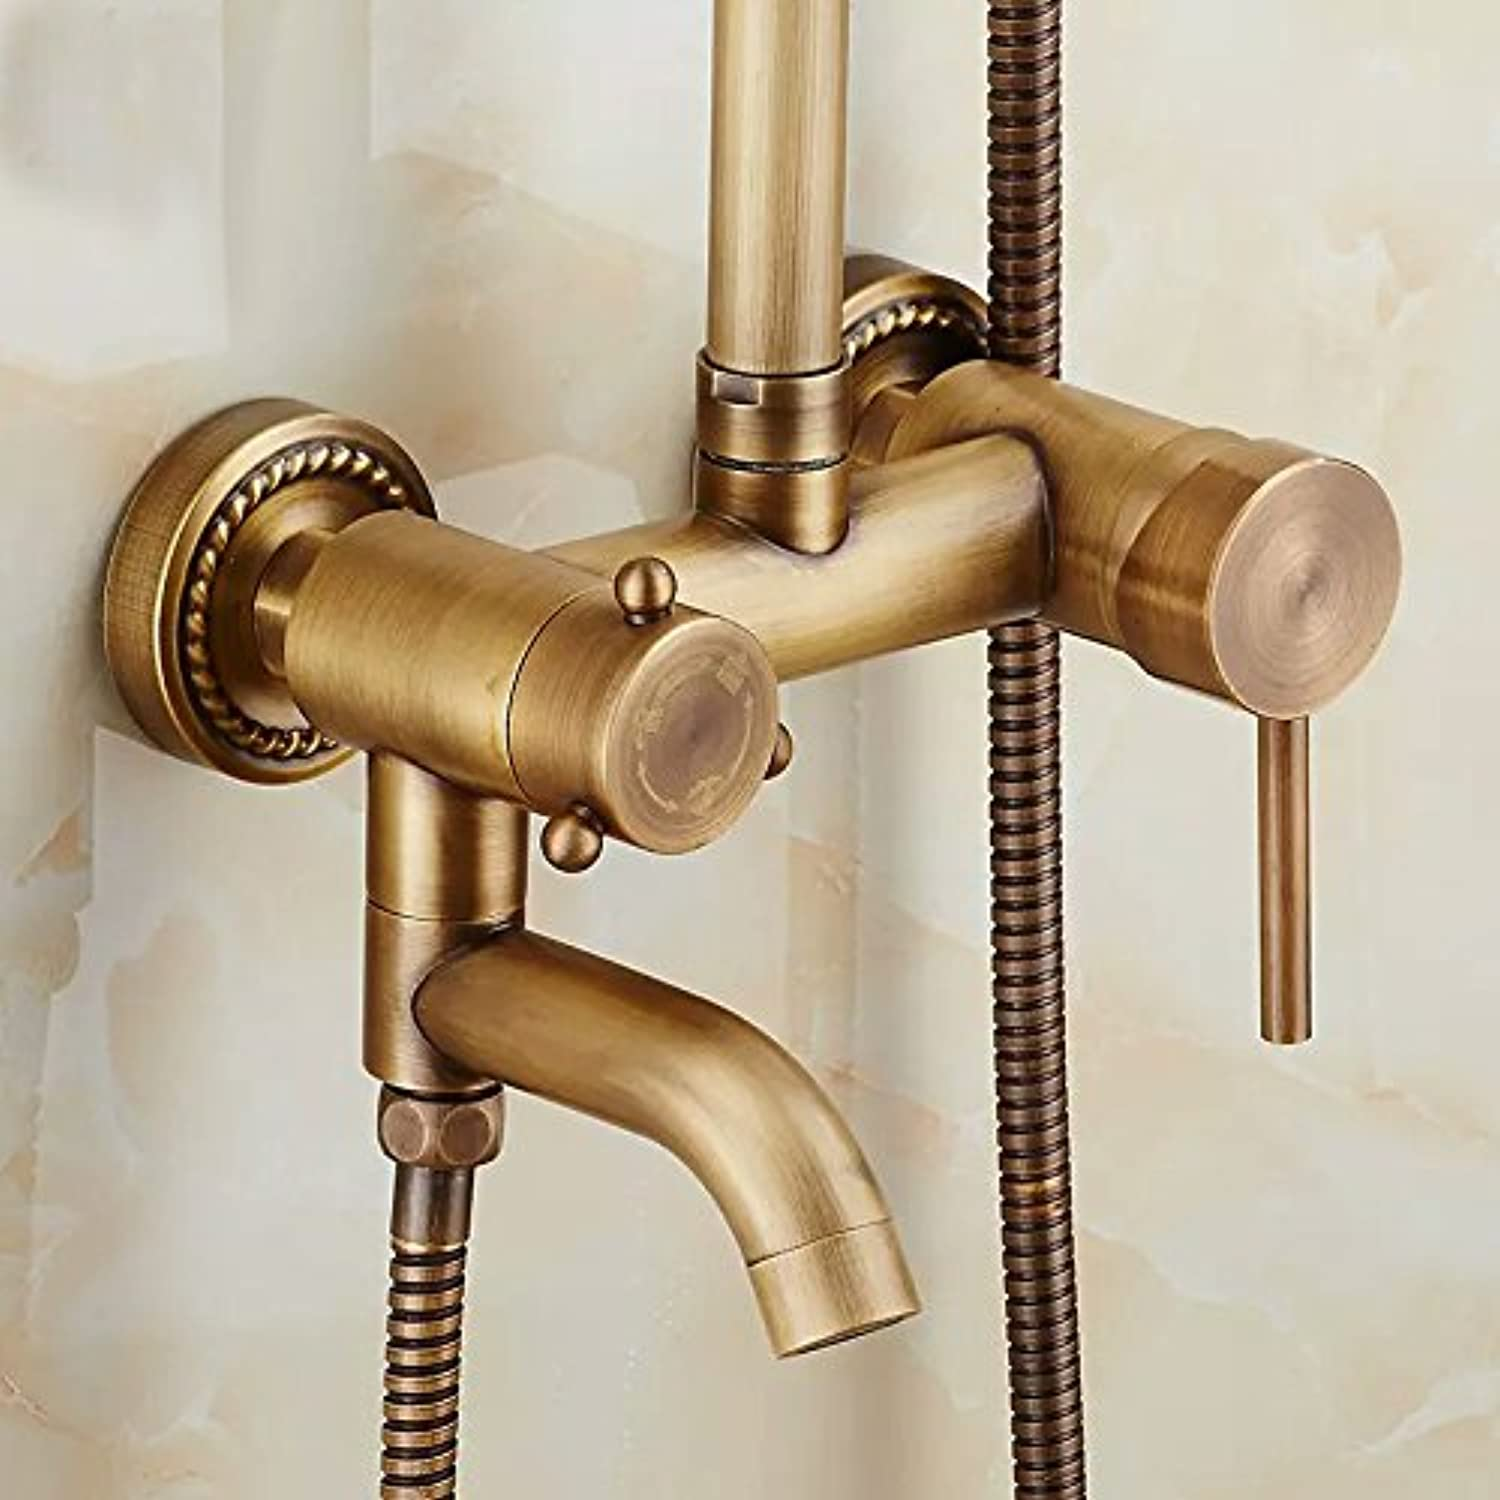 Bijjaladeva Antique Bathroom Sink Vessel Faucet Basin Mixer Tap Shower Faucet antique shower kit lift shower shower faucet antique large three-position